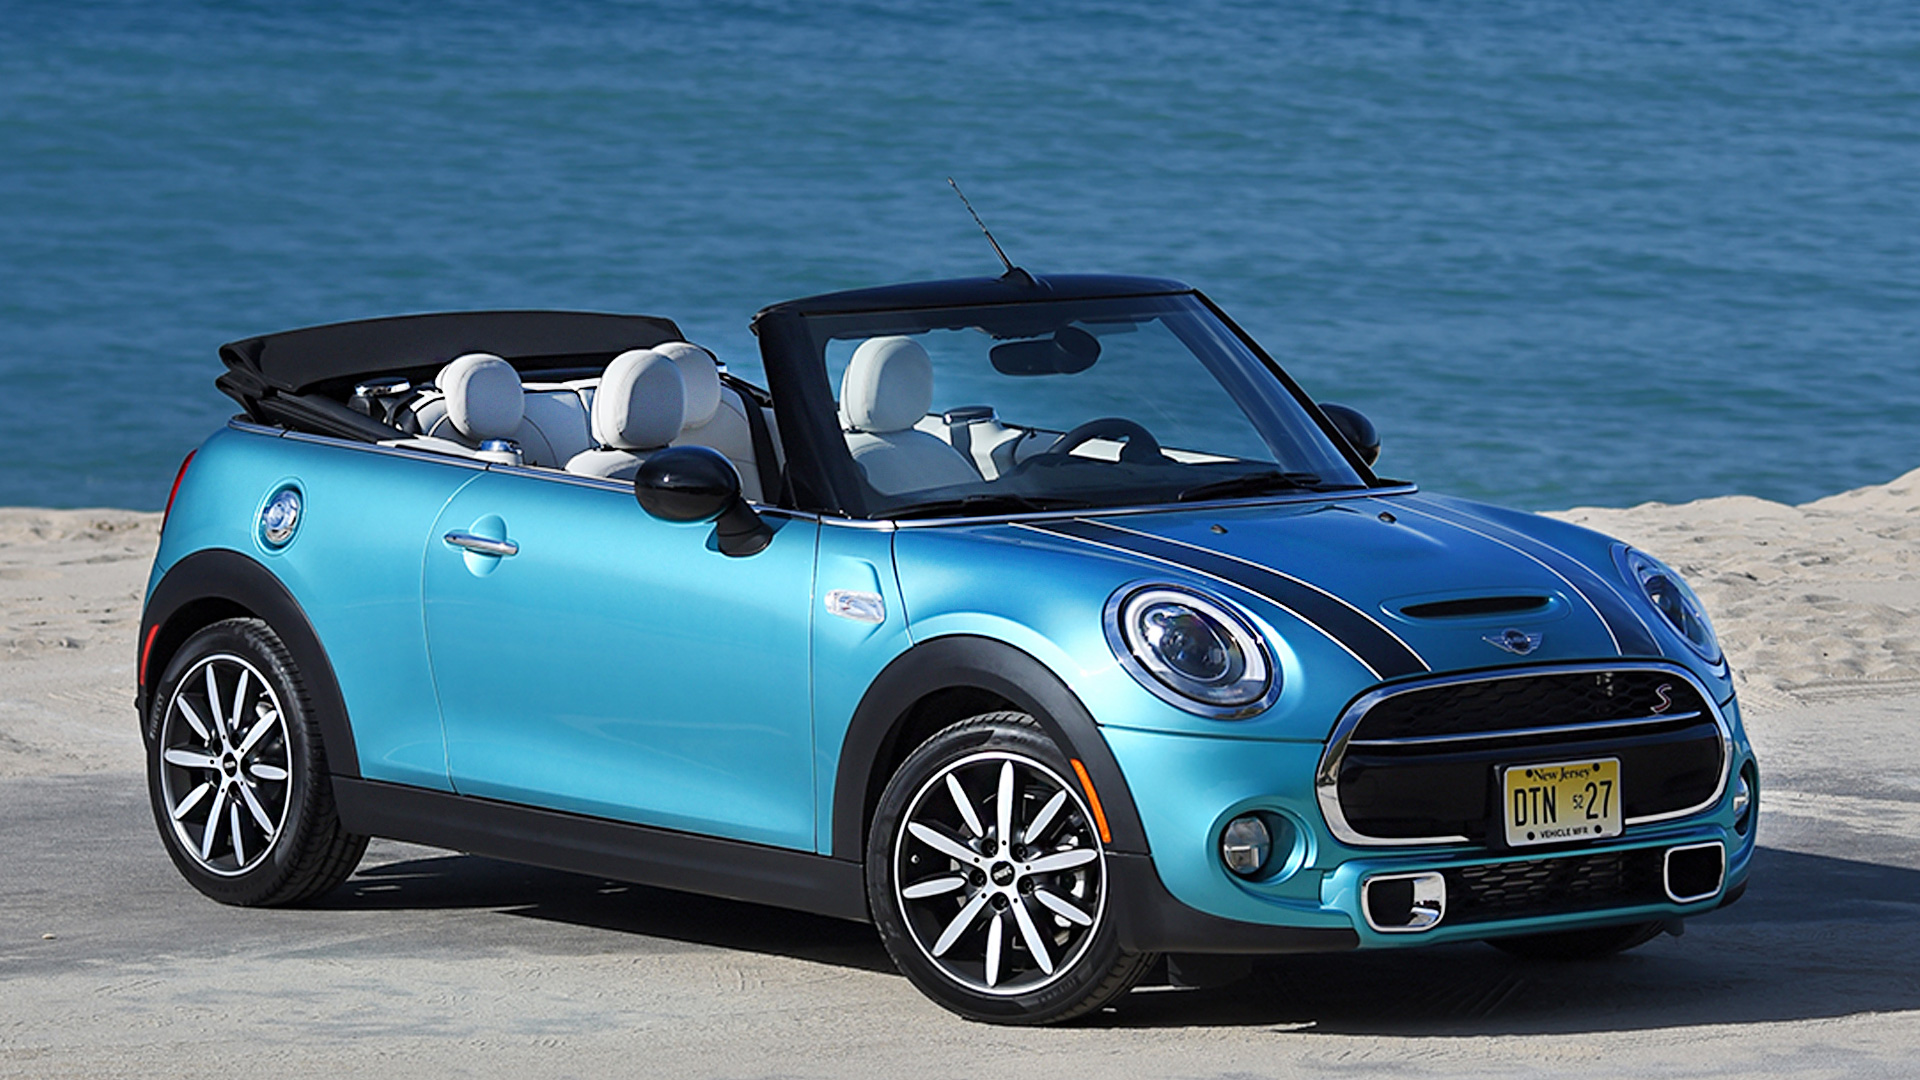 mini cooper 2016 convertible price mileage reviews specification gallery overdrive. Black Bedroom Furniture Sets. Home Design Ideas